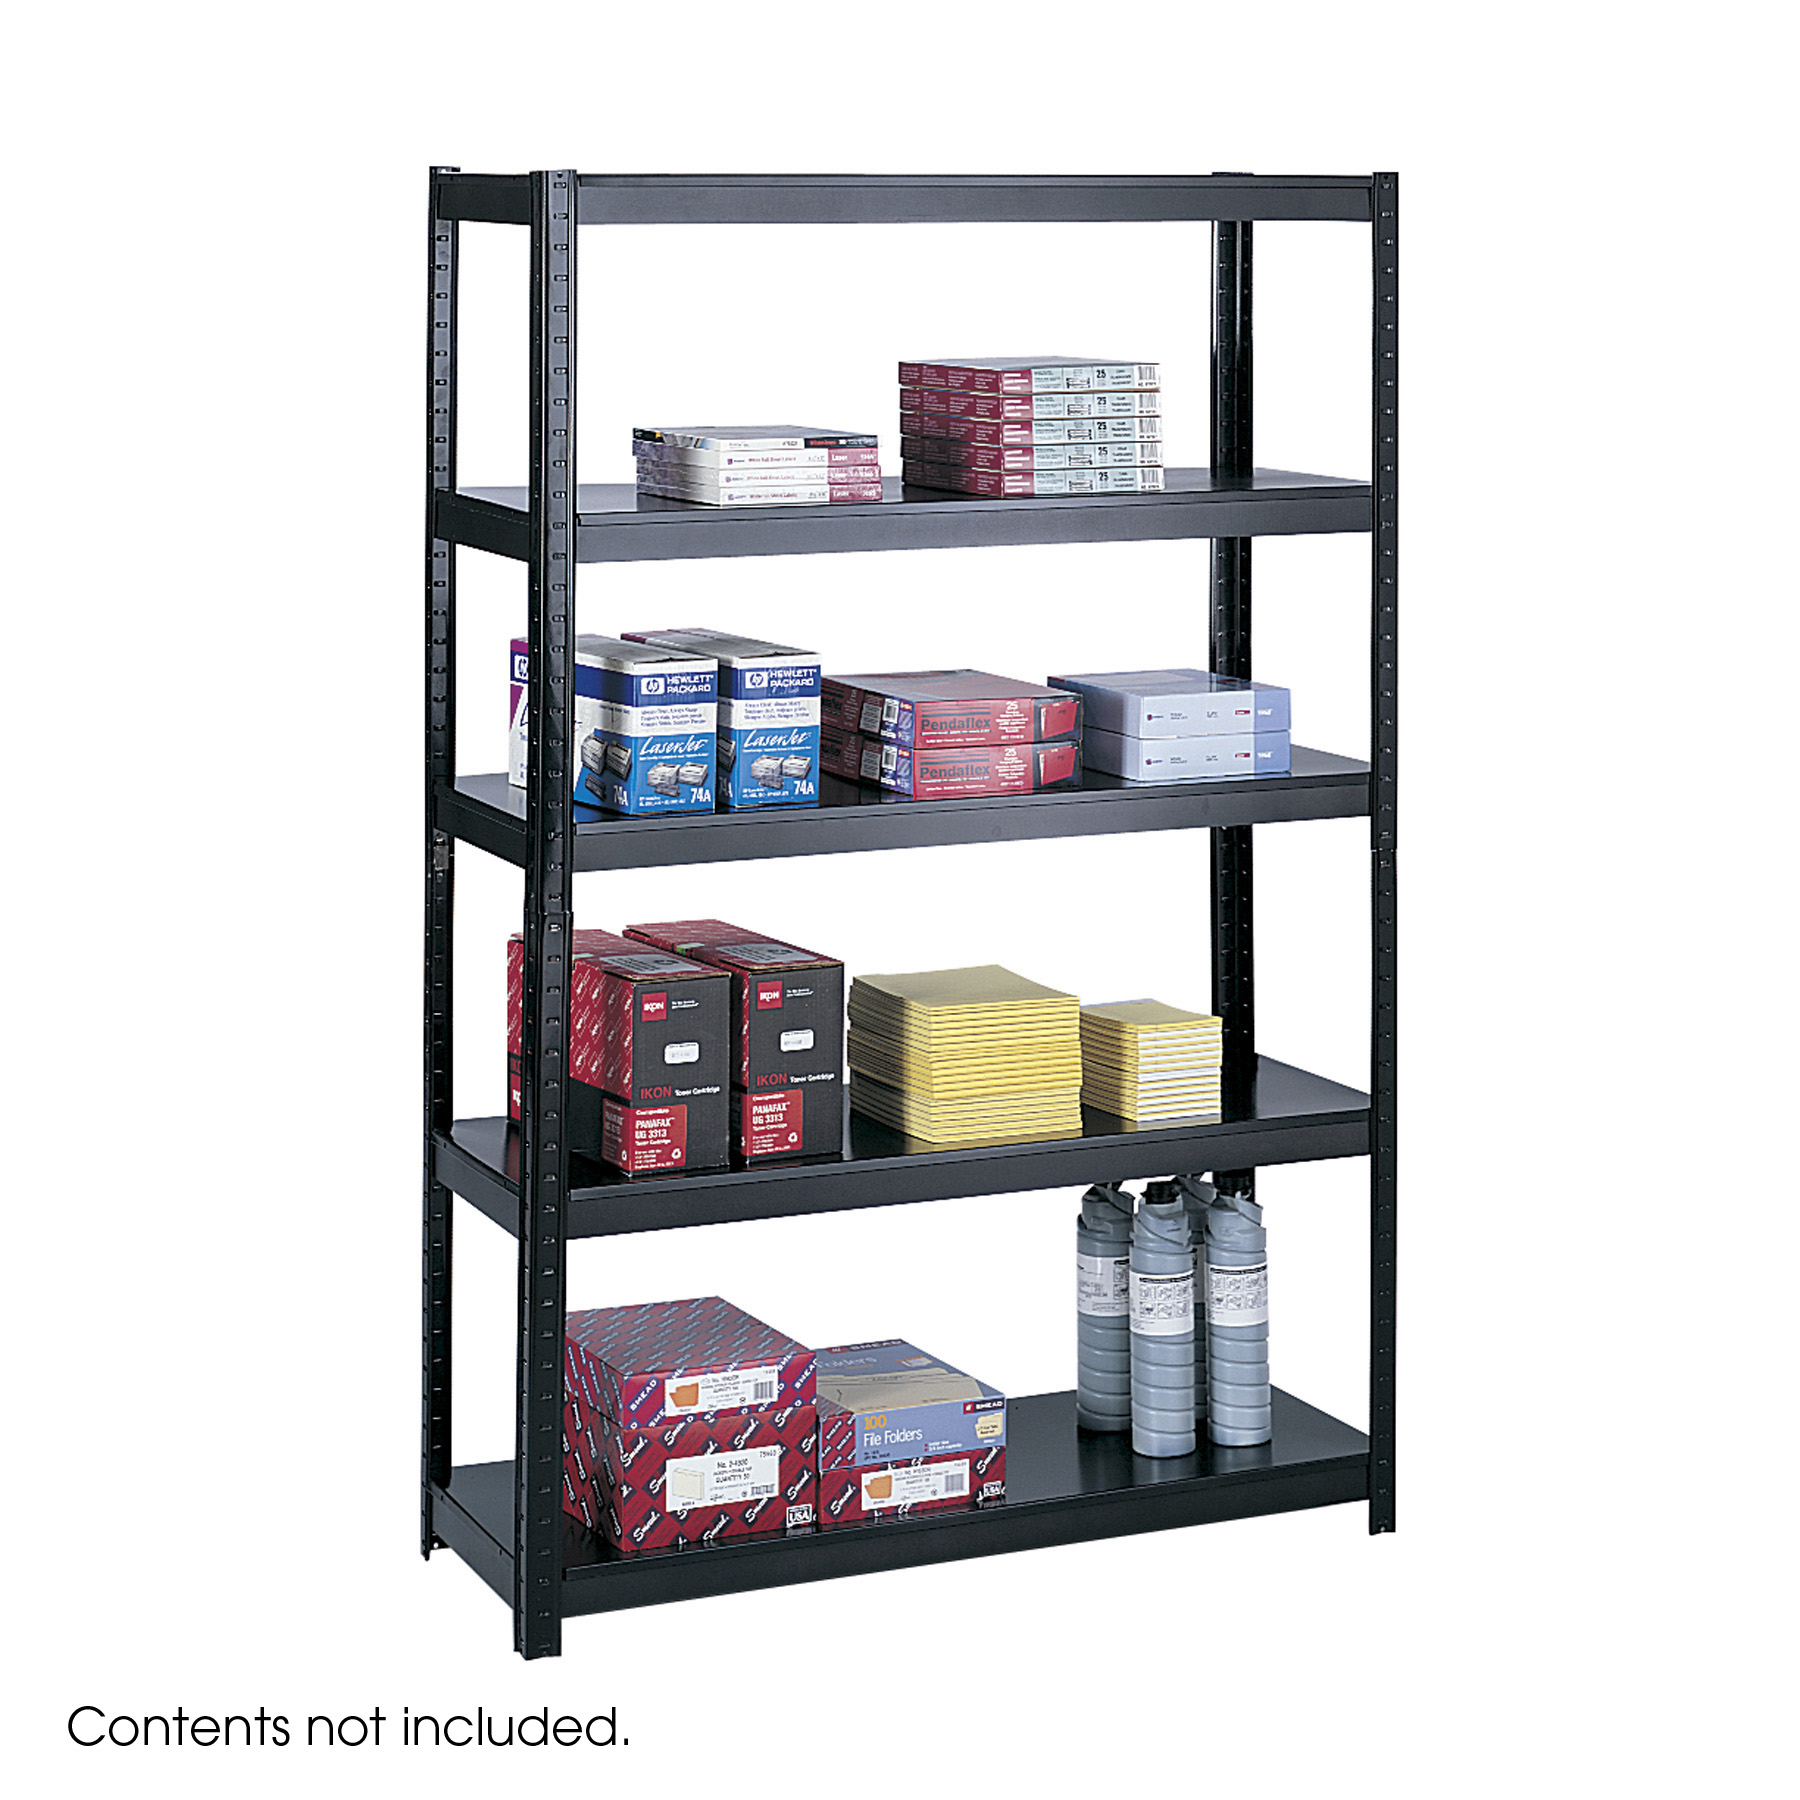 Lot of 5 Safco 48 Inch Wide 18 Inch Deep Boltless Shelving steel